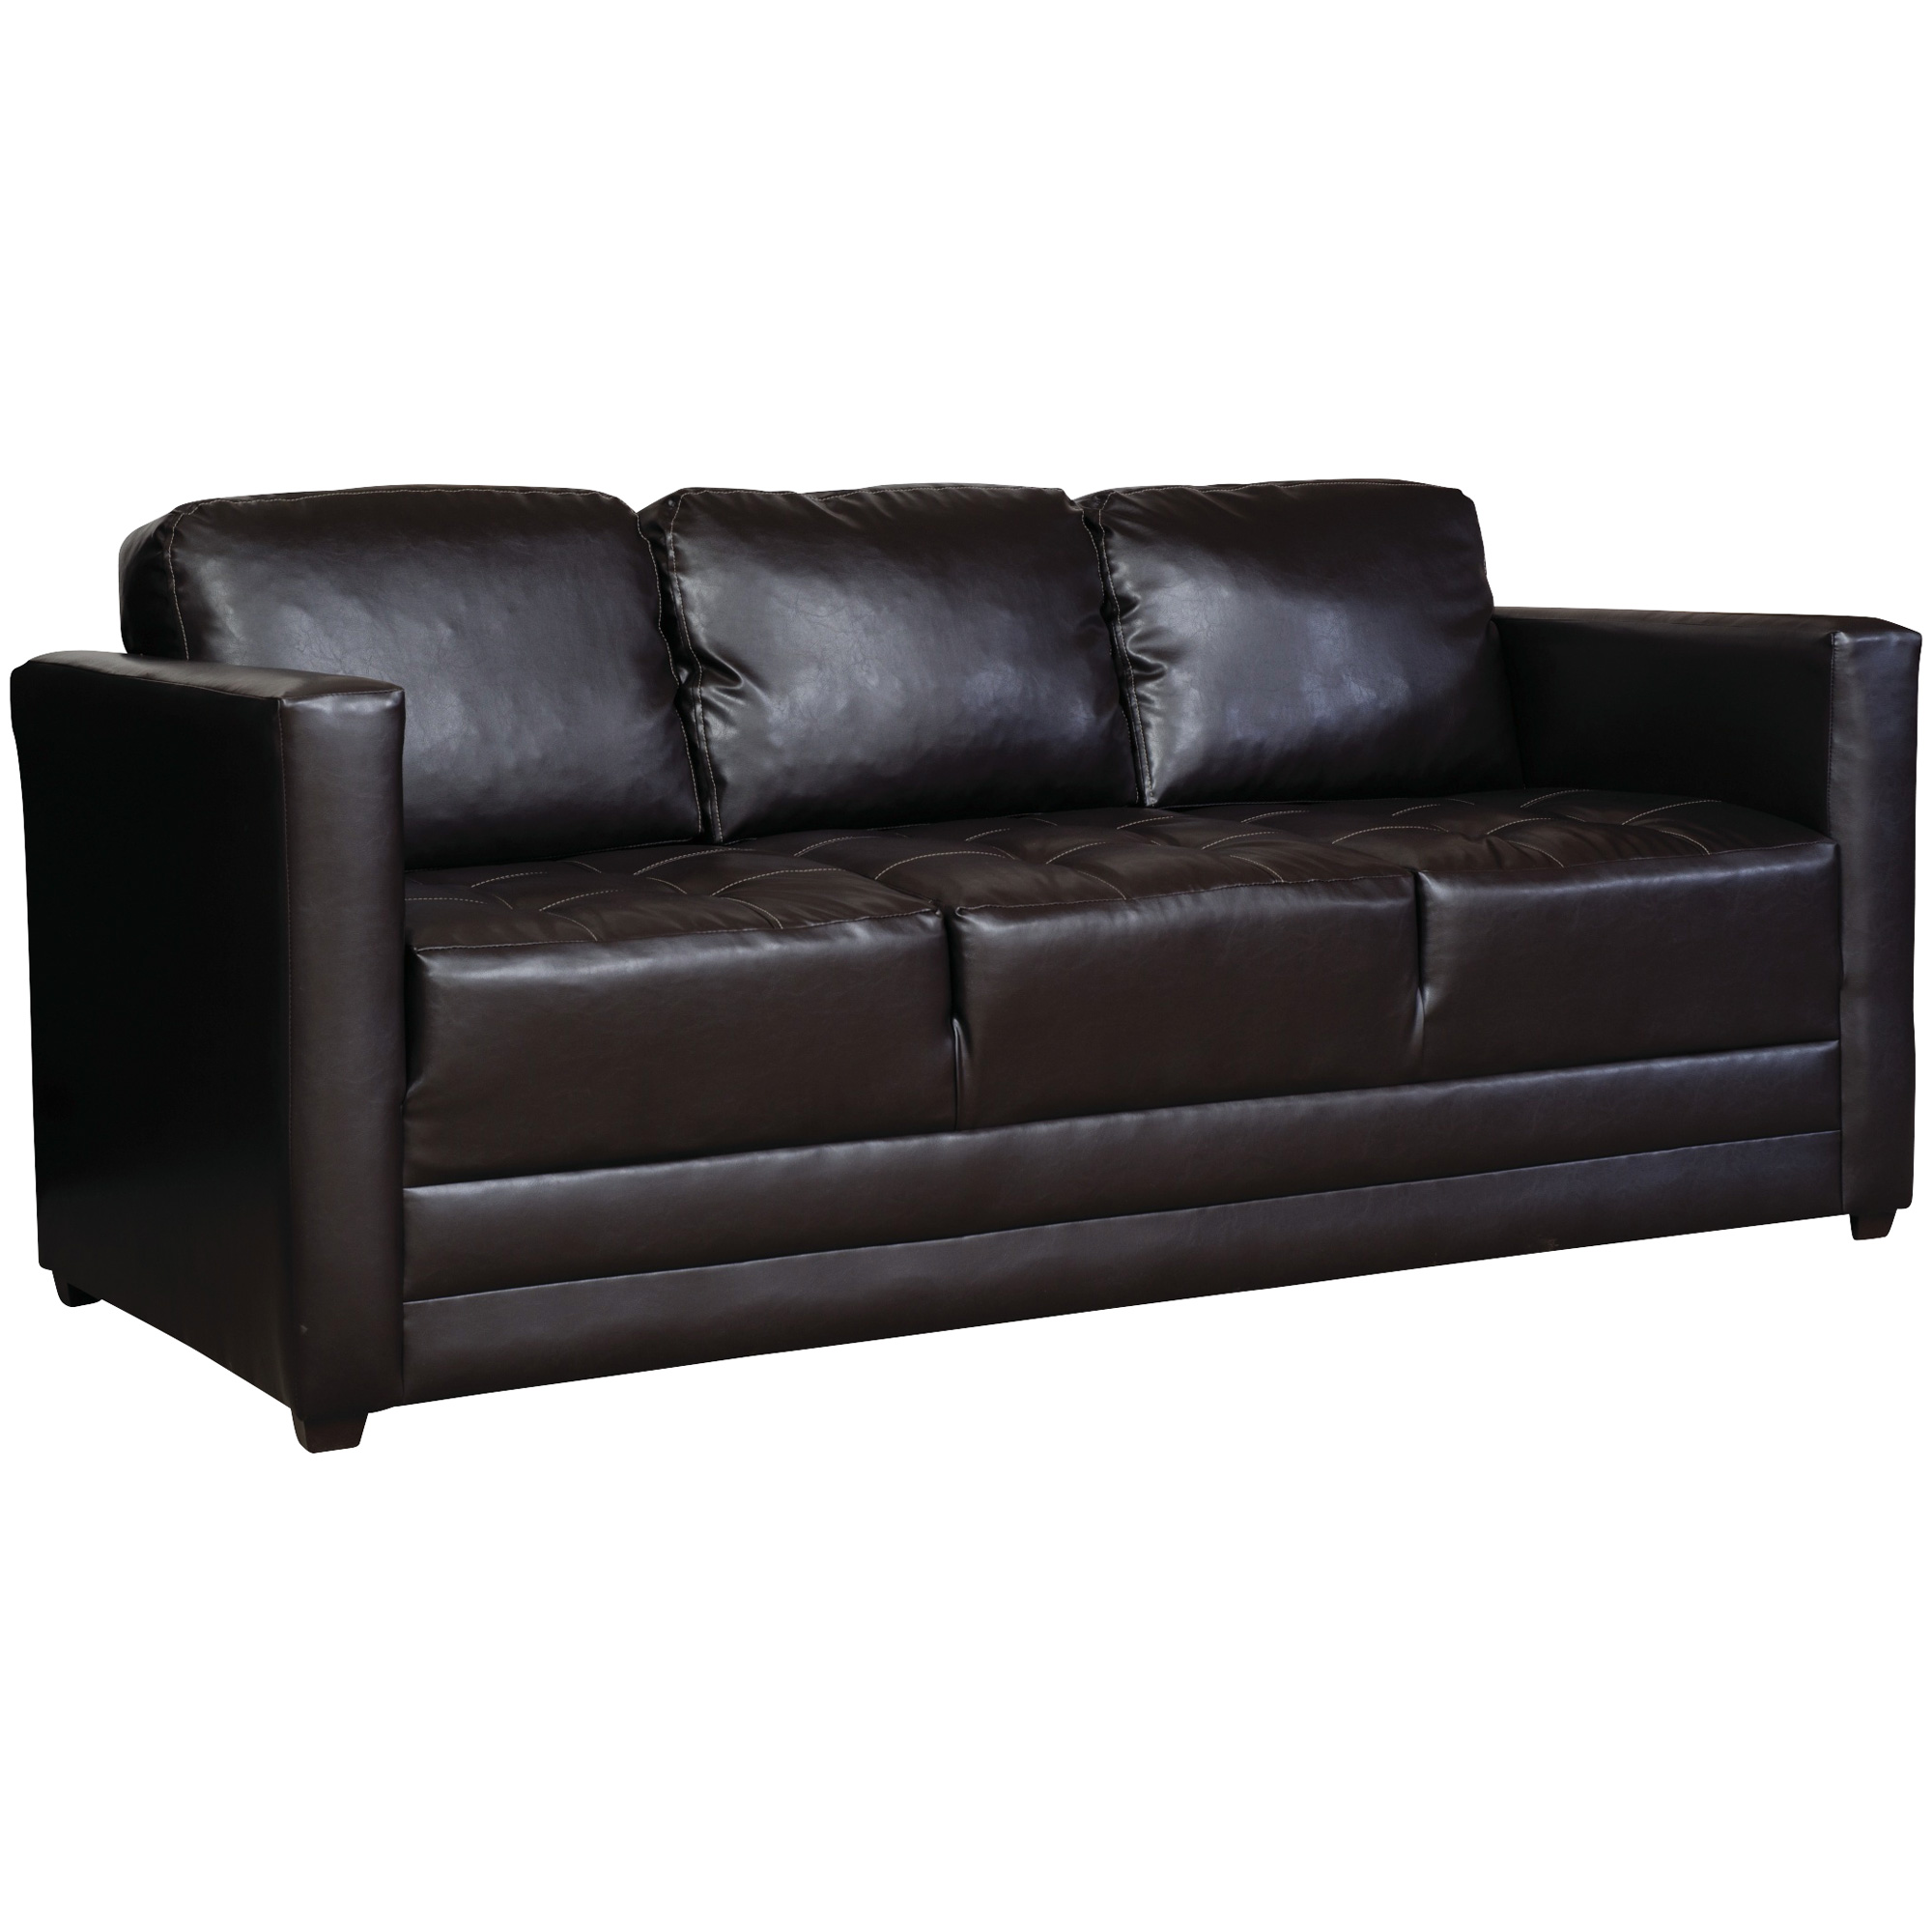 Serta Upholstery By Hughes Furniture | Burton Chocolate Sofa